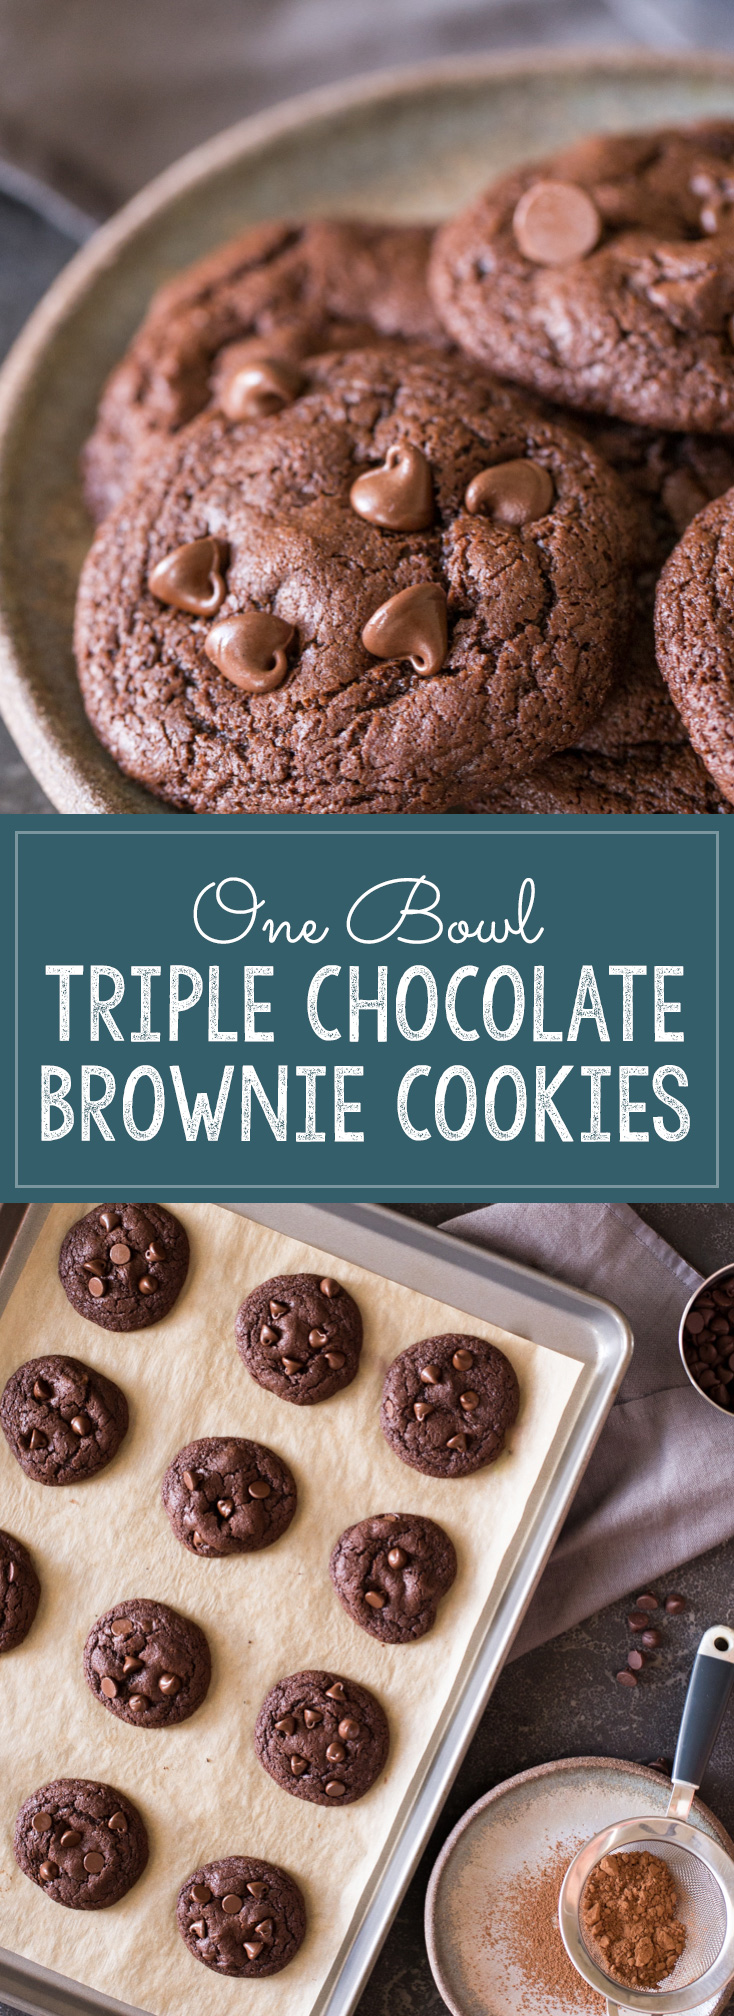 These One Bowl Triple Chocolate Brownie Cookies are so delicious and easy to make too!